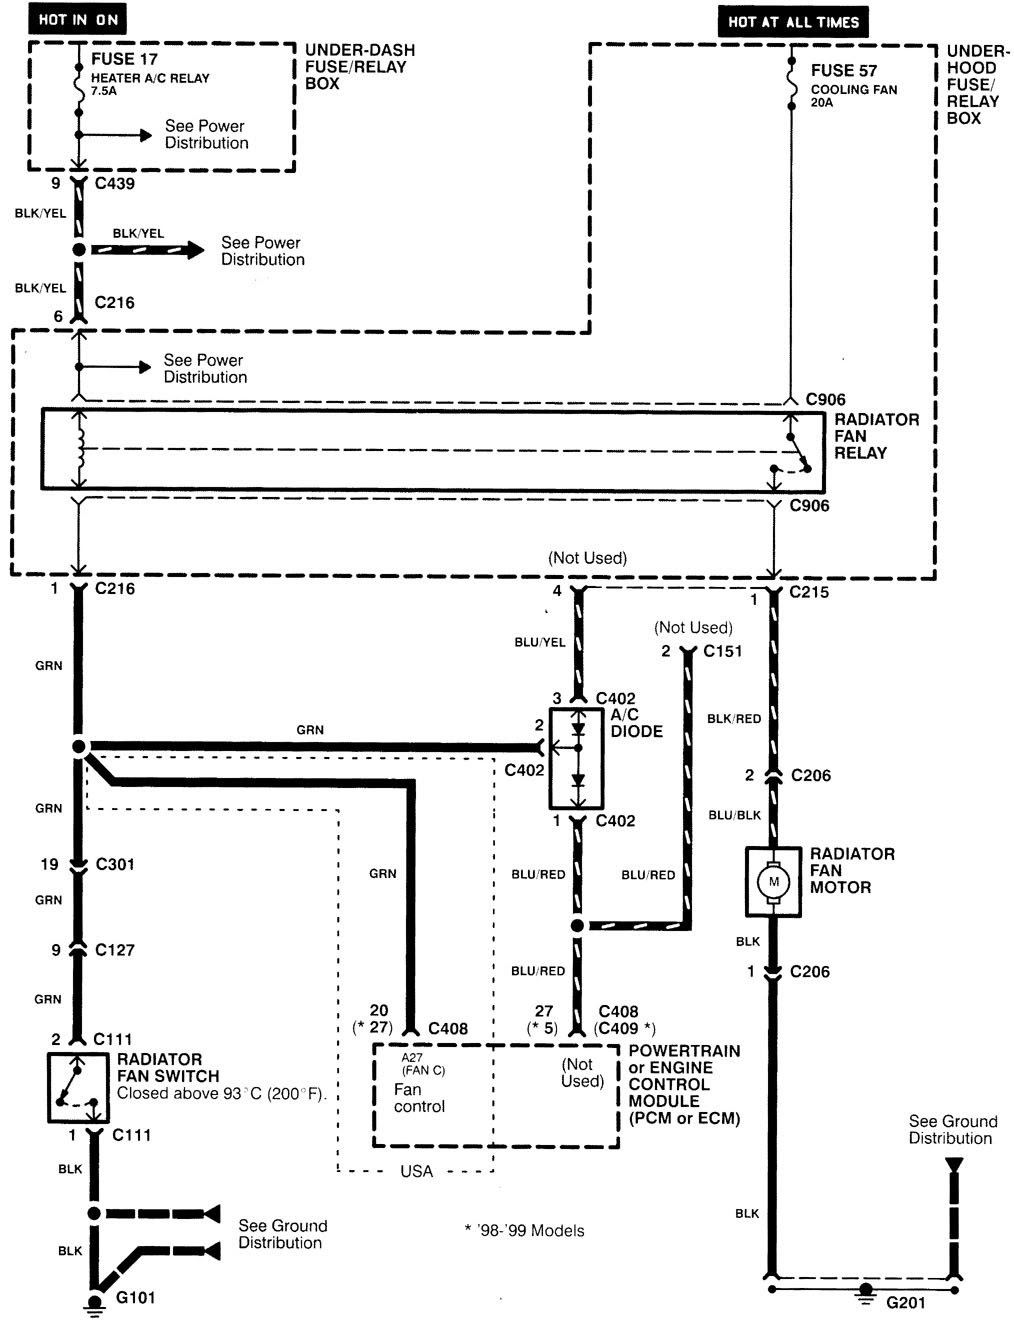 94 Integra Fuse Diagram - Wiring Diagram Networks